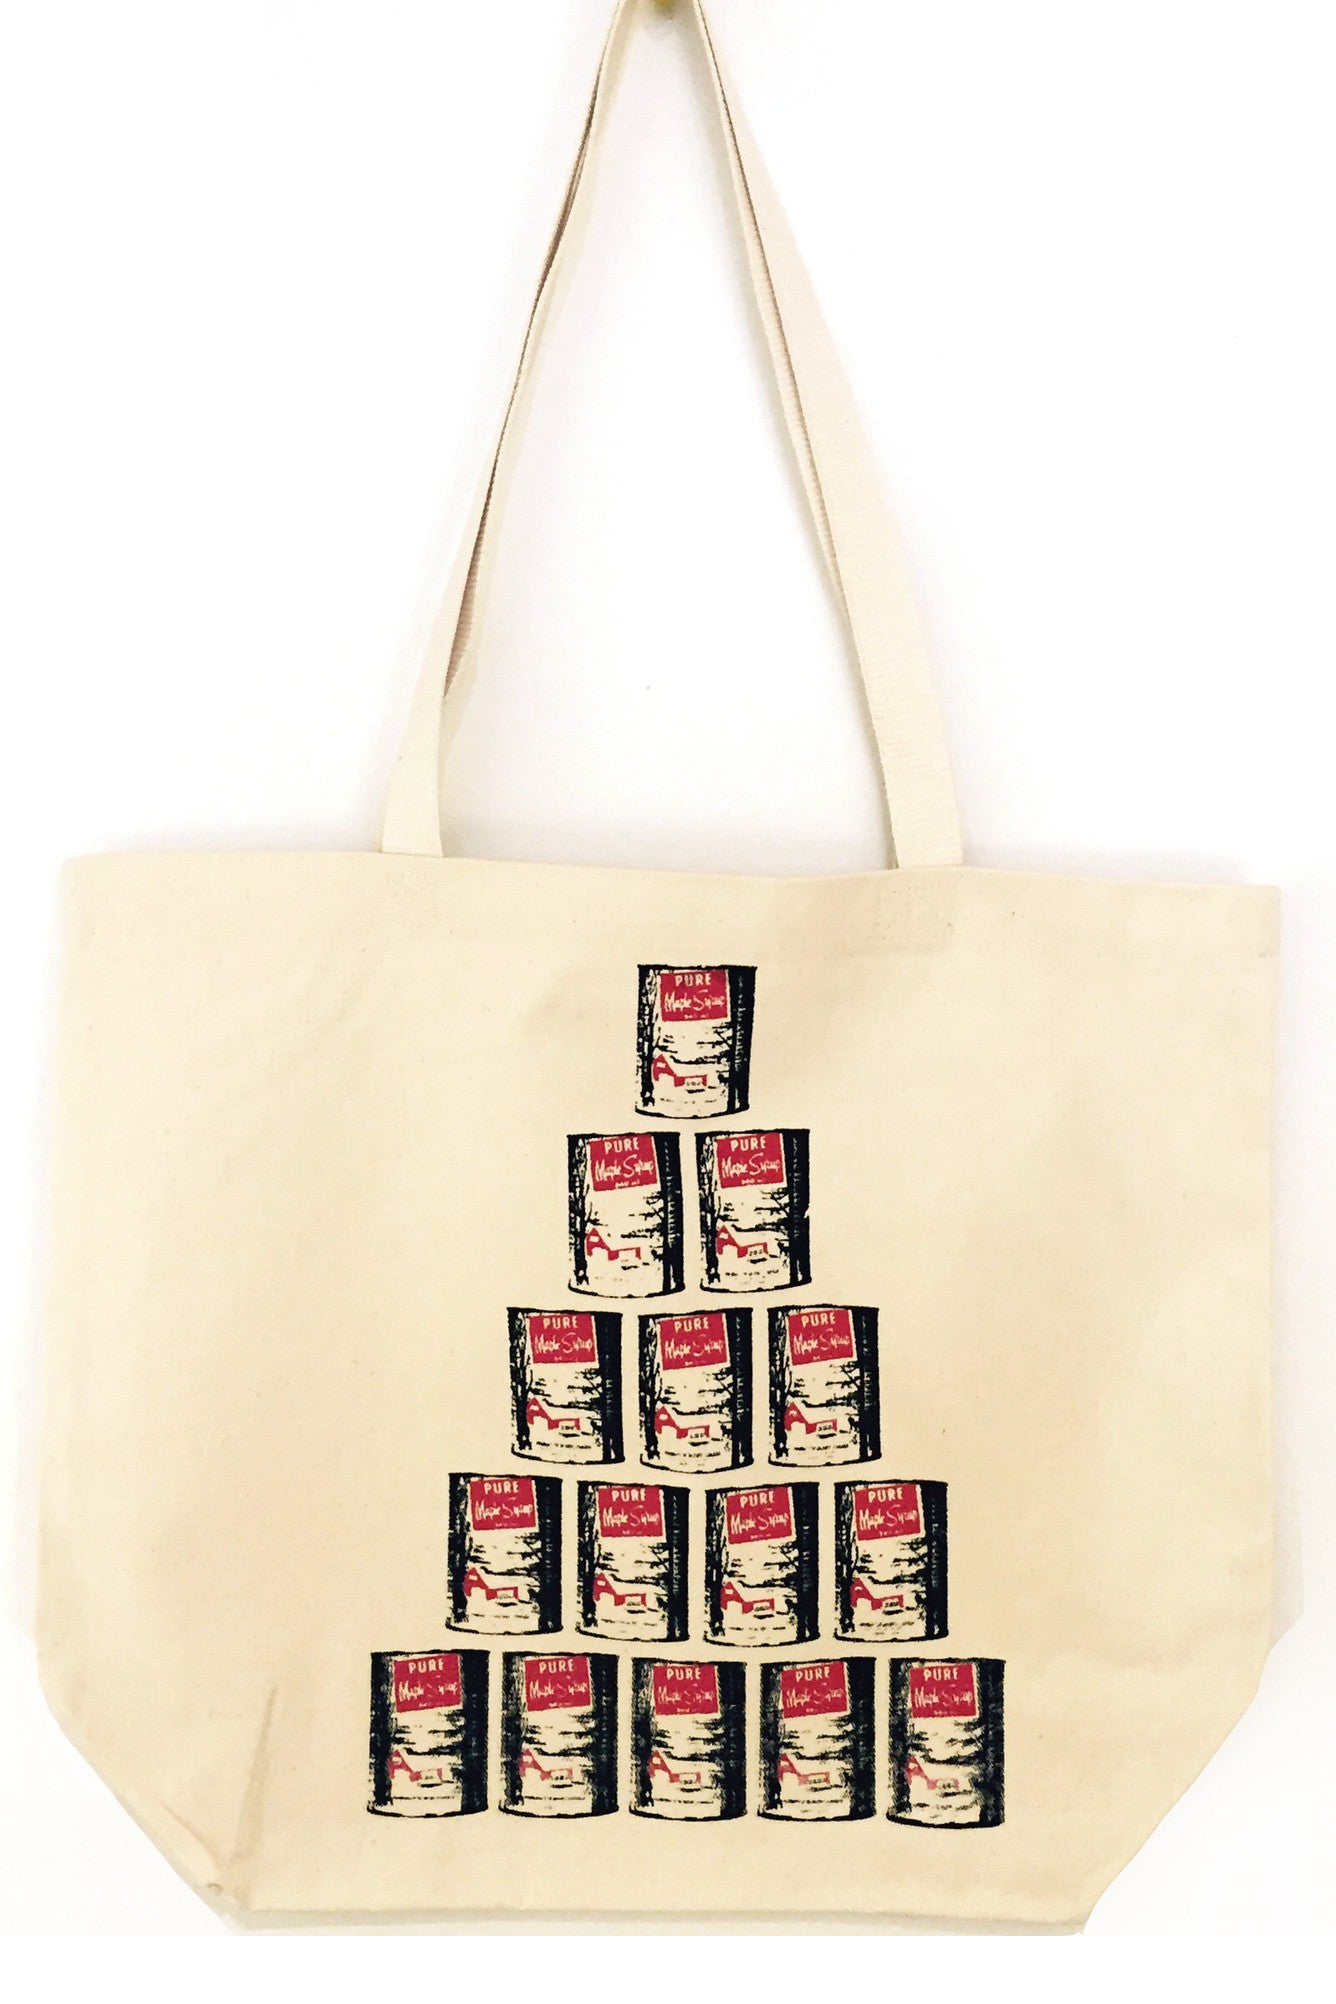 Hand Silk-screened Warhol Inspired Maple Syrup Canadian Tote Bag, Handamde in Ottawa Canada